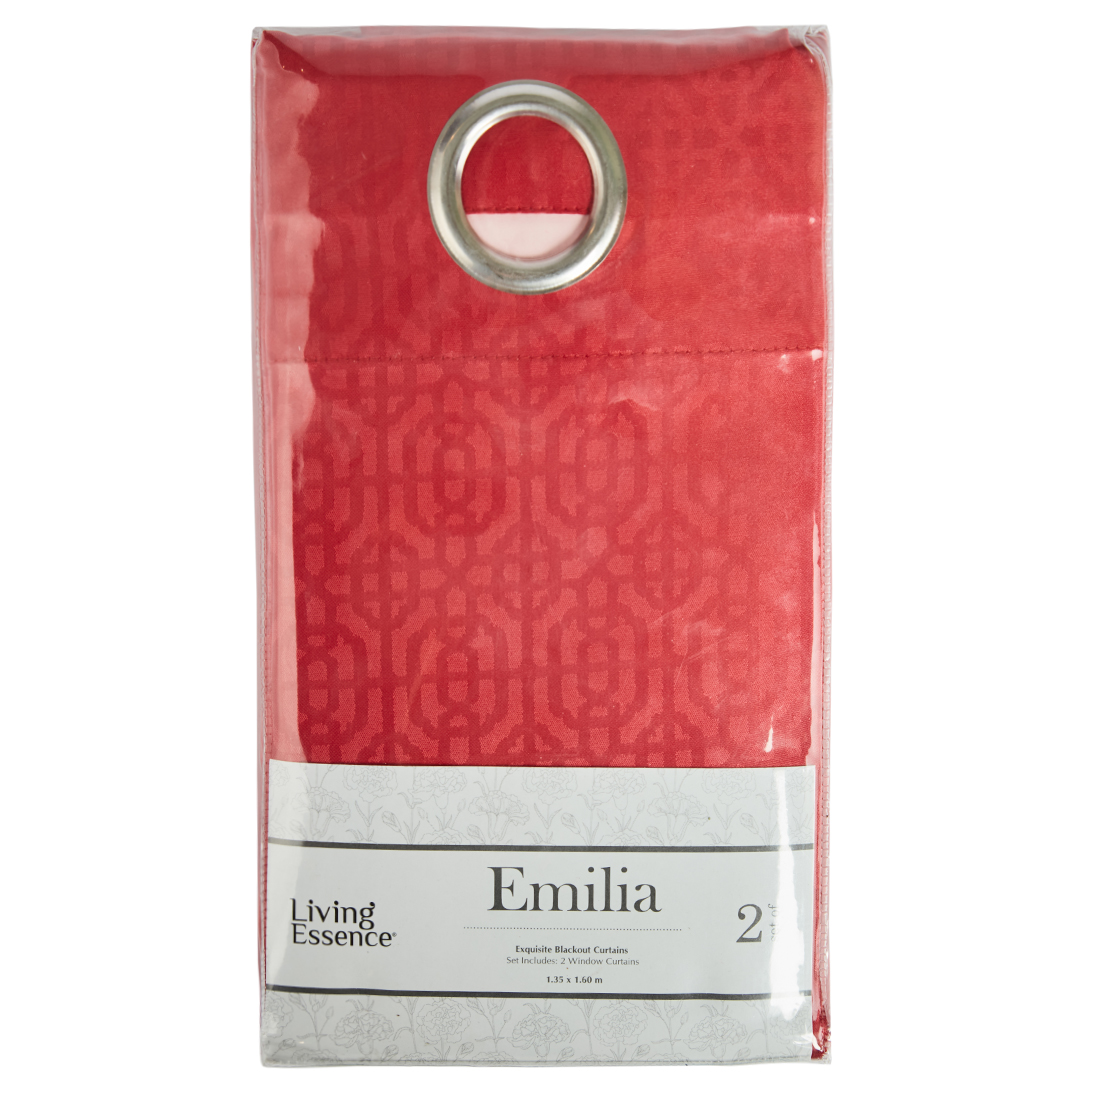 Emilia Jacquard Polyester Window Curtains in Red Colour by Living Essence